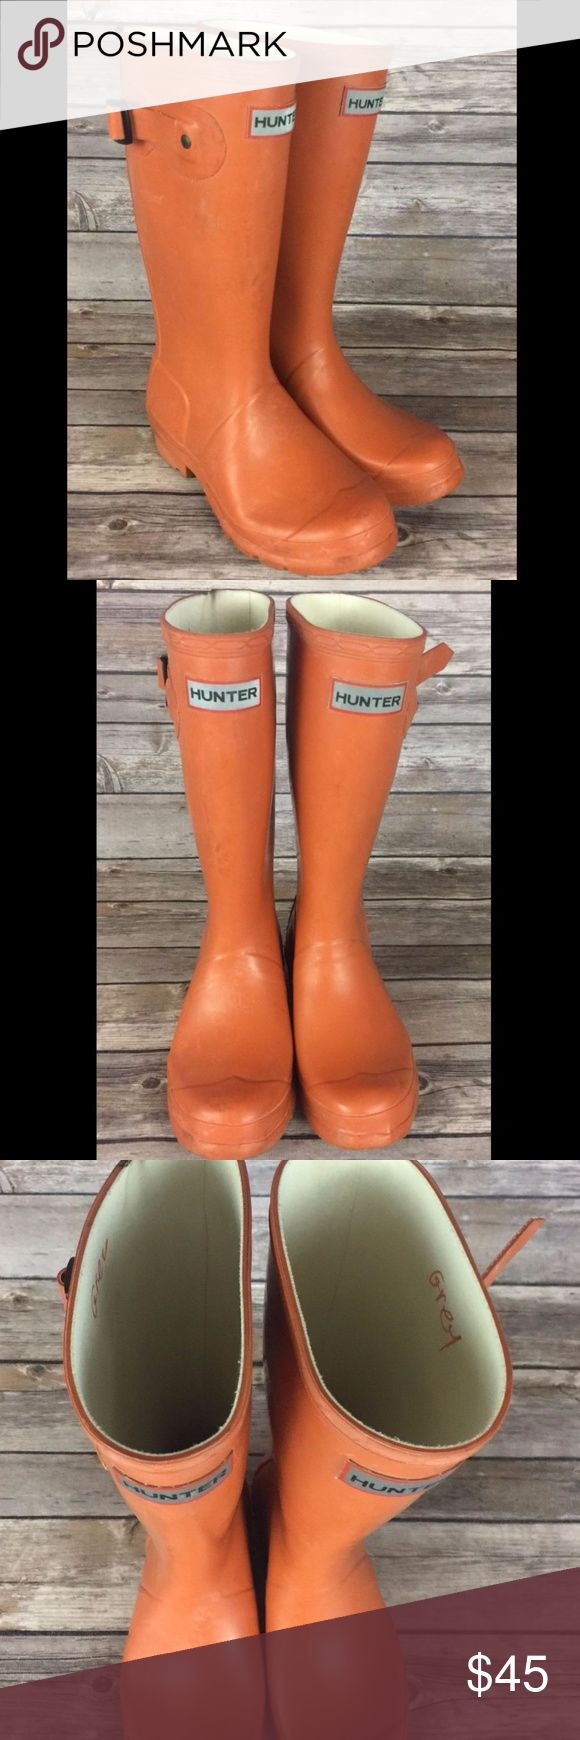 """Hunter Boots Wellington Rain Orange Girls Size 3 Hunter Original Rubber Wellington Boots Orange w/ Reflective Backs Boy's Size 2 / Girl's Size 3 (US)  Well used/worn - some scuffs / marks inside and out - please see photos.  """"Grey"""" written in marker/pen inside inner tops of both boots. Quite a bit of bloom - I have worked on them w/ olive oil but as you can tell by the photos these are more of a play boot than a dress up boot! Style #W23500 Hunter Shoes Rain & Snow Boots"""